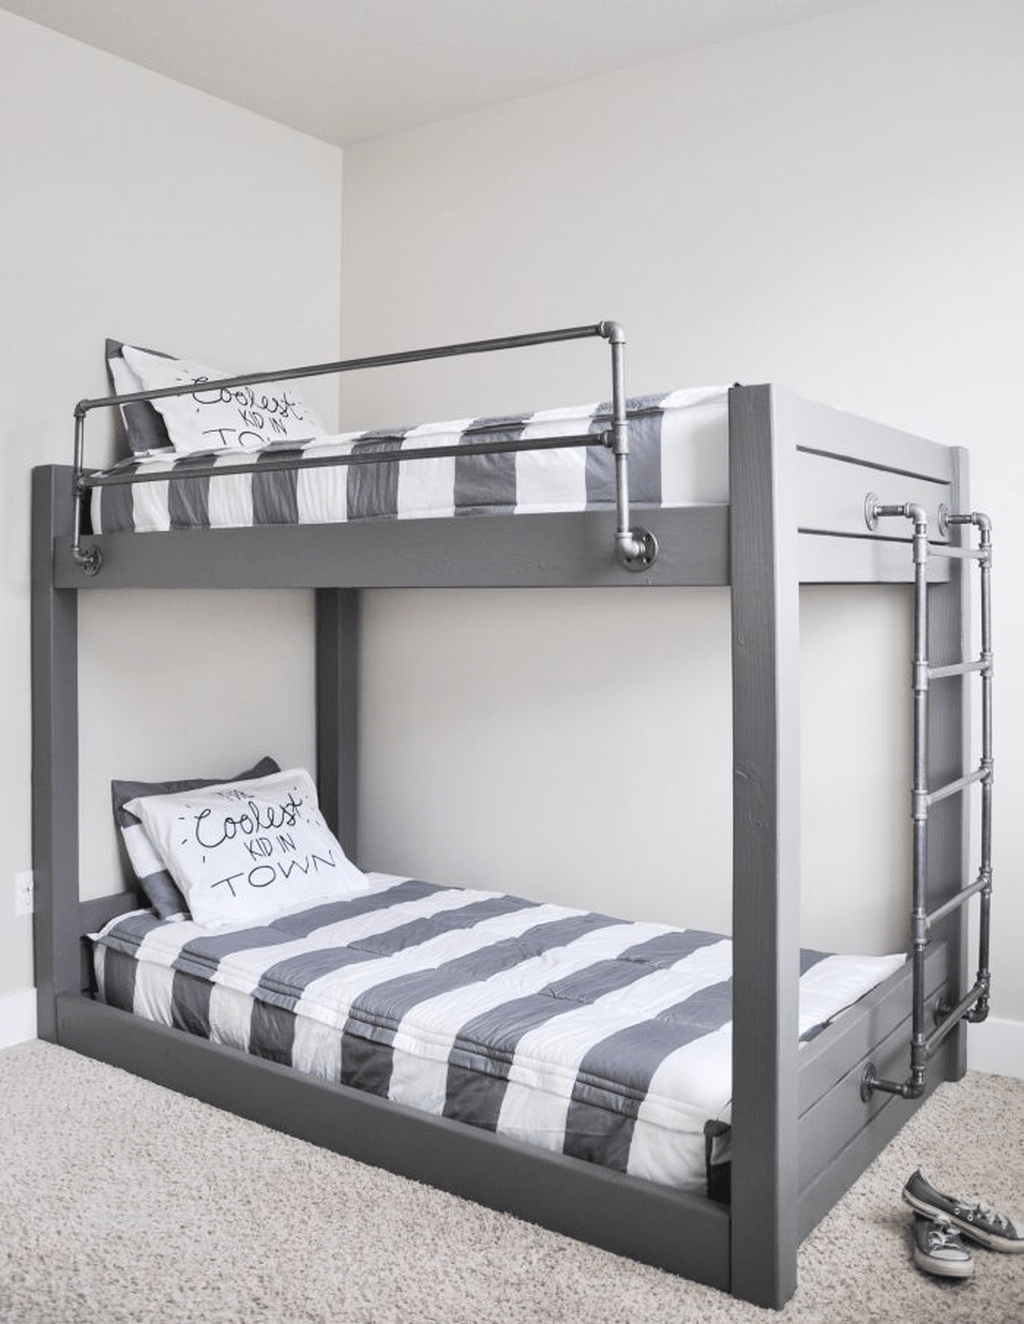 Fascinating Bunk Beds Design Ideas For Small Room 04